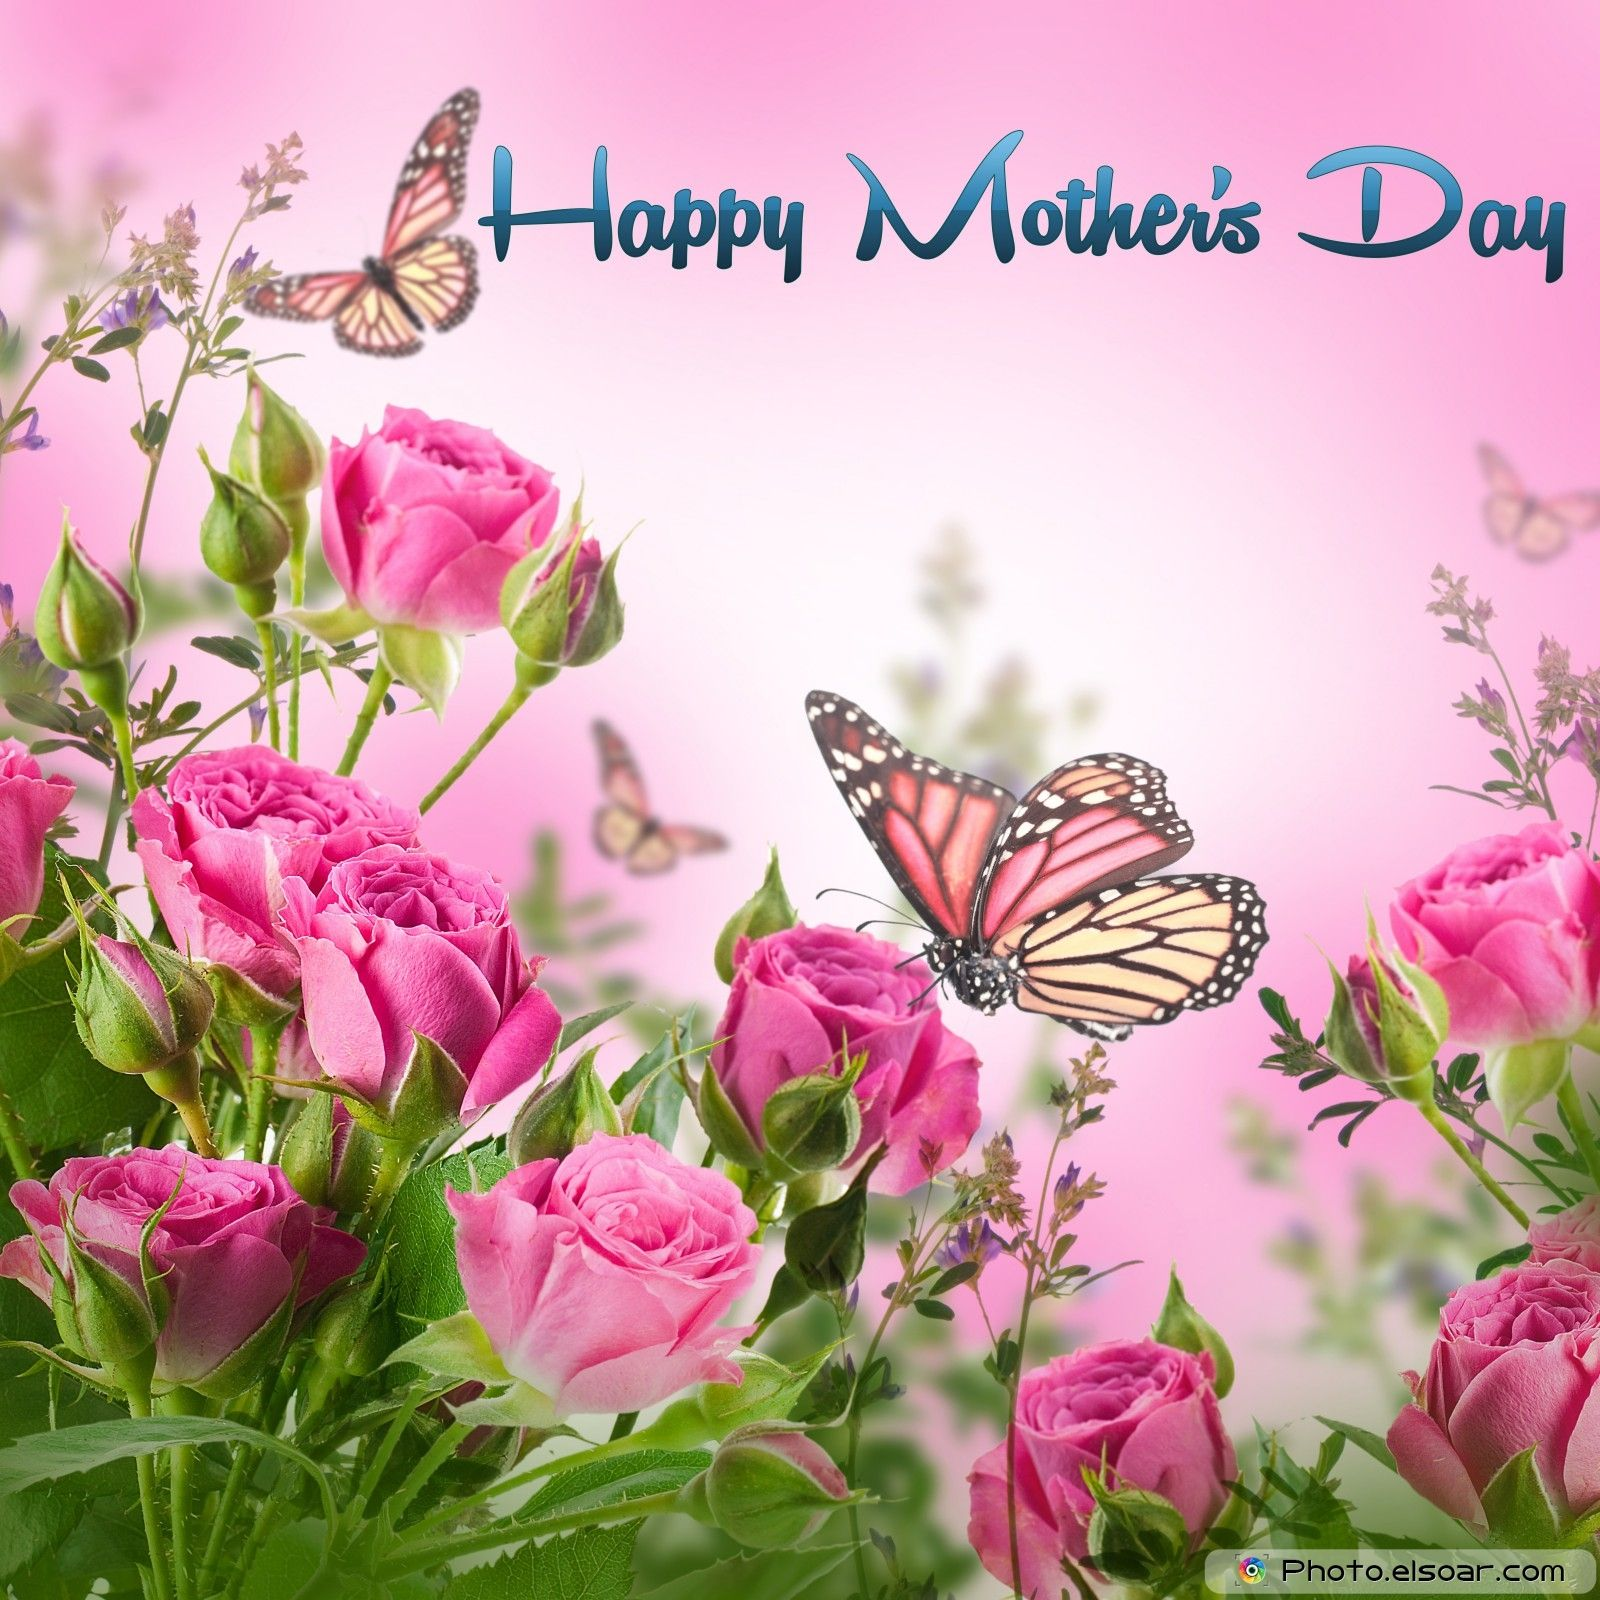 To A Wonderful Loving Daughter That God Has Blessed Me